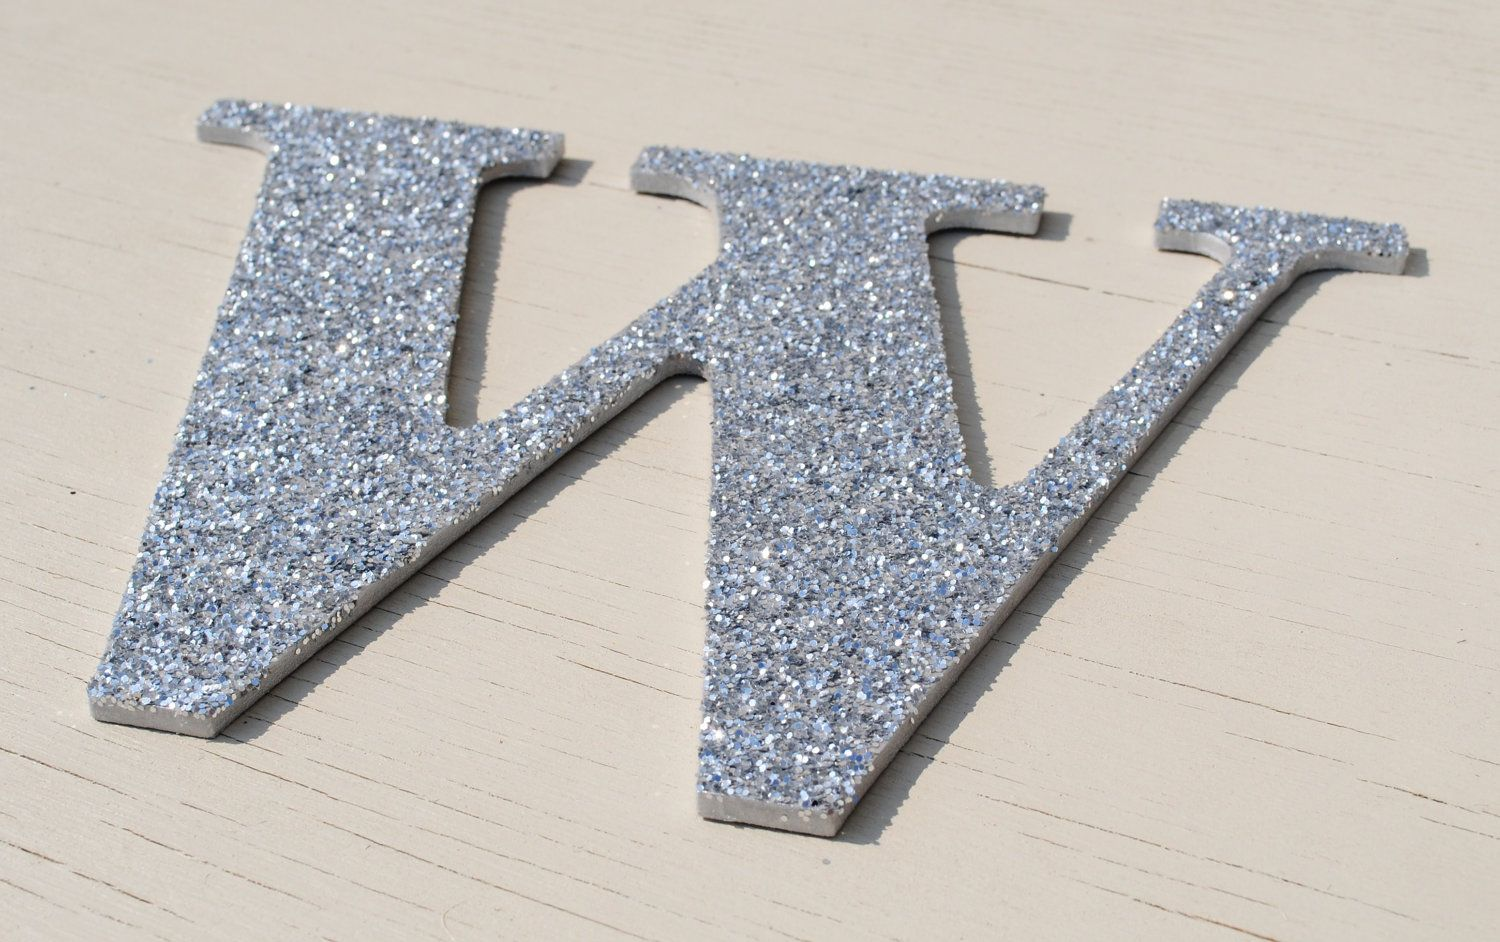 Big Silver Letters For Wall Inspiration Decorative Silver Holiday Glitter Wall Letters$800 Via Etsy Inspiration Design